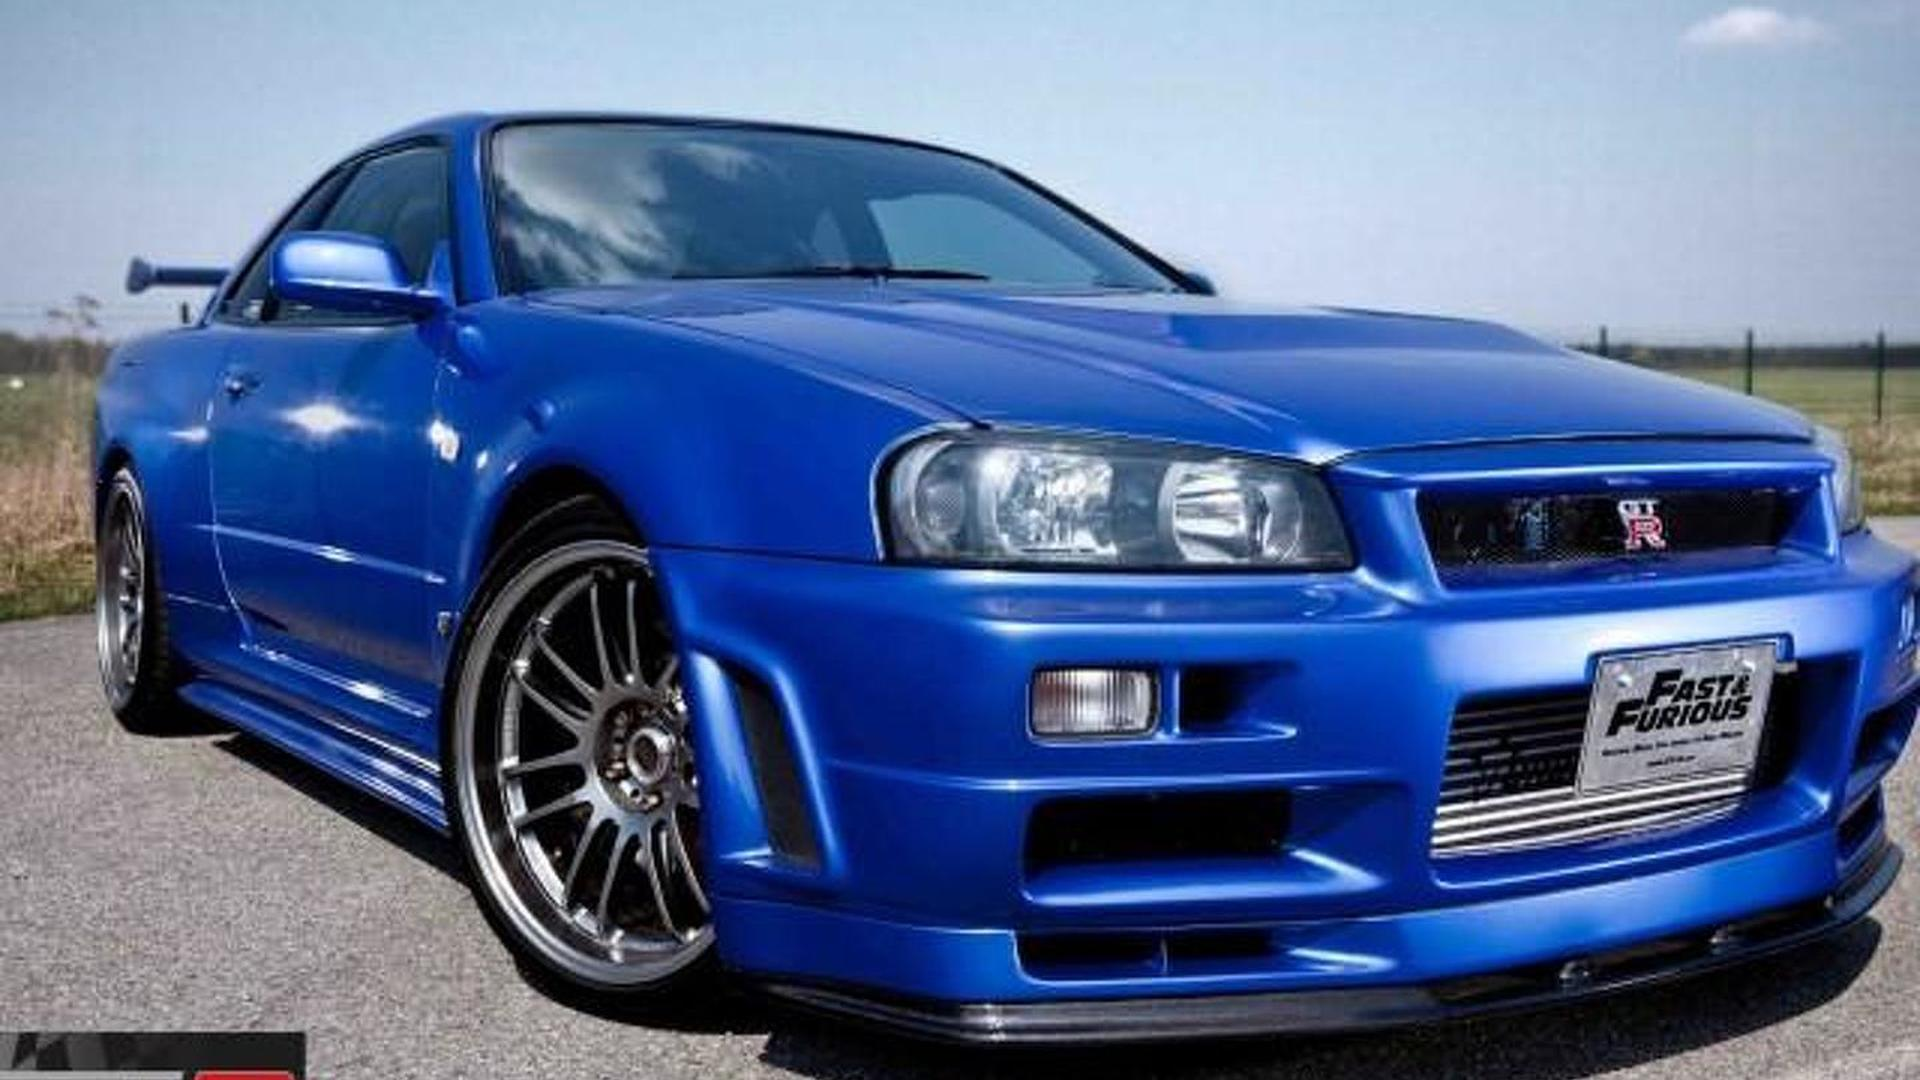 image nissan for gallery r bumper photo gt rear gtr features skyline sale hasemi